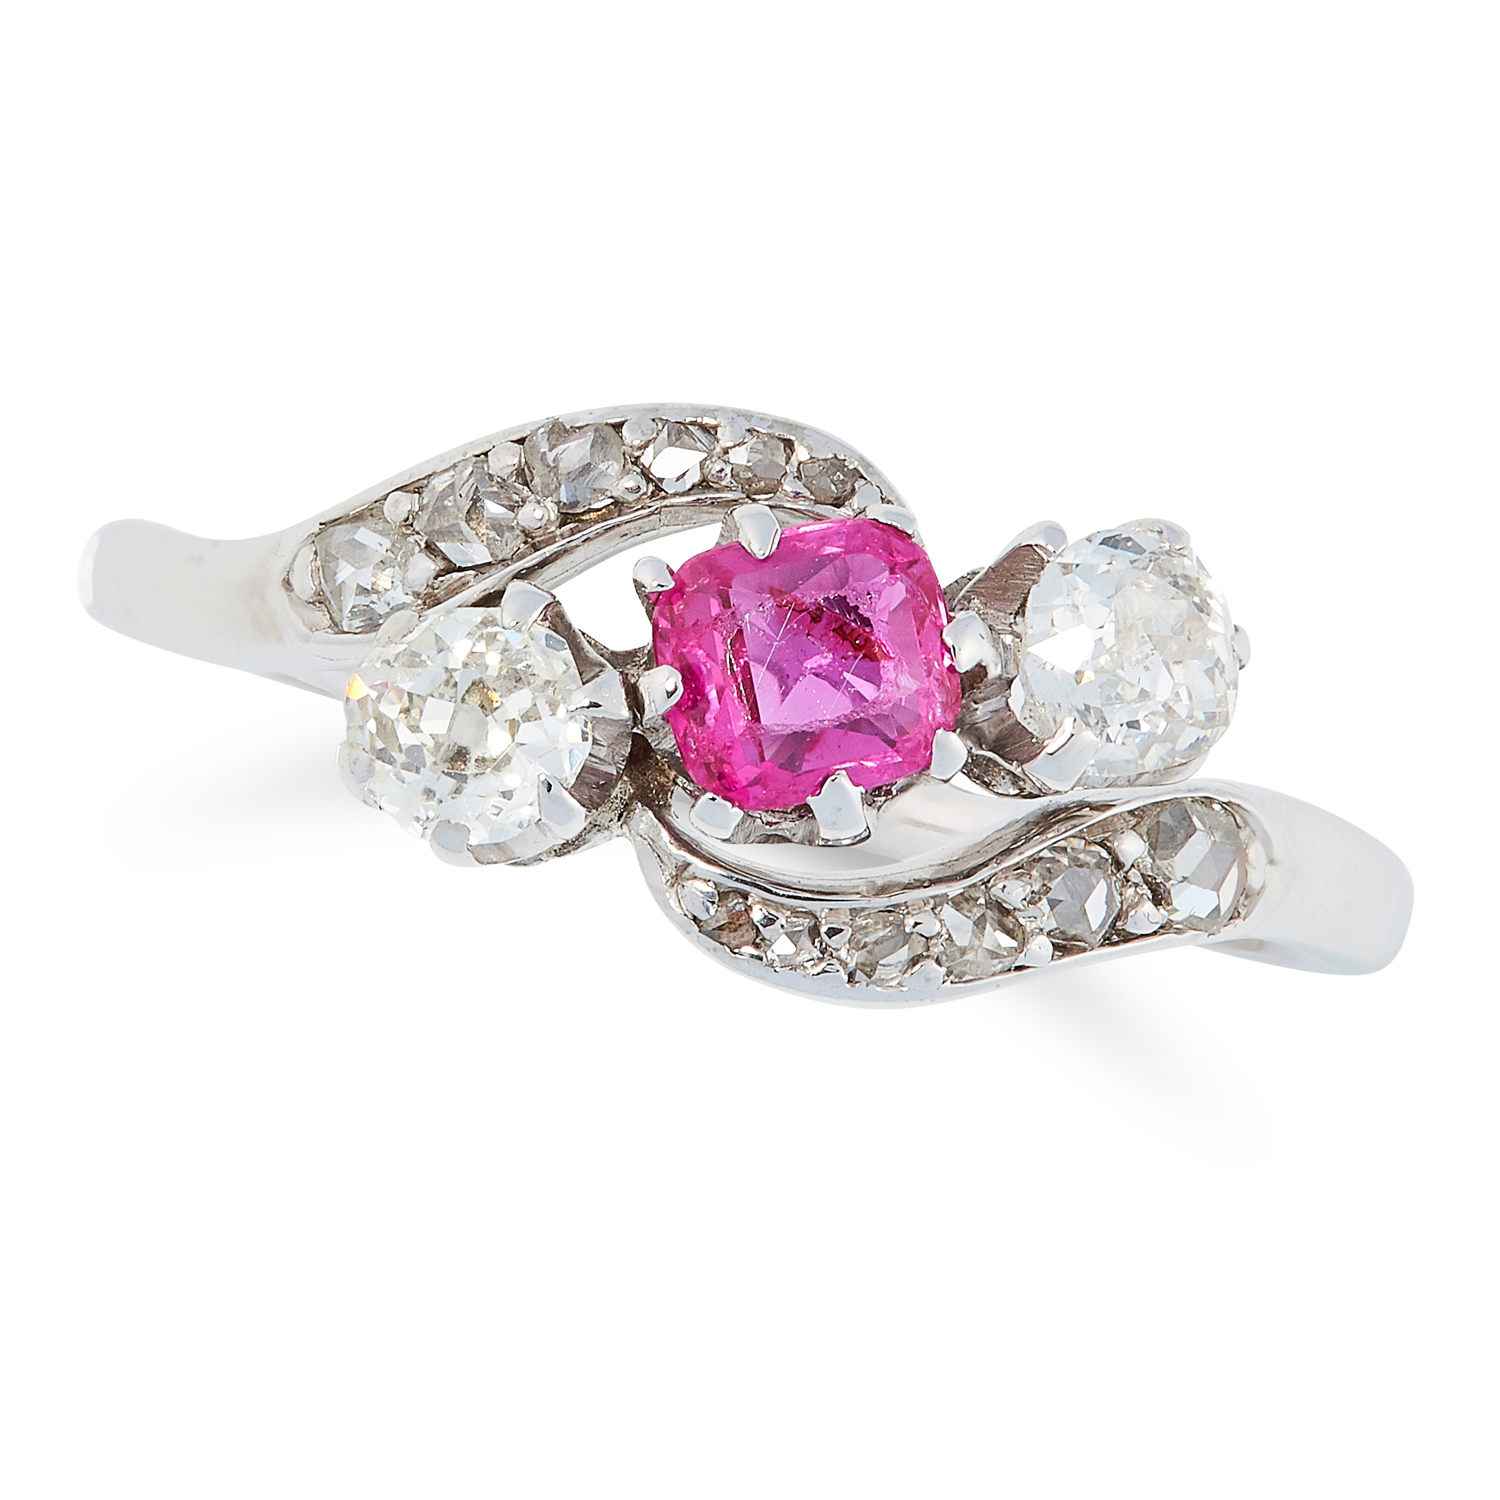 AN ANTIQUE RUBY AND DIAMOND RING, CIRCA 1900 in crossover design, set with a cushion cut ruby, round